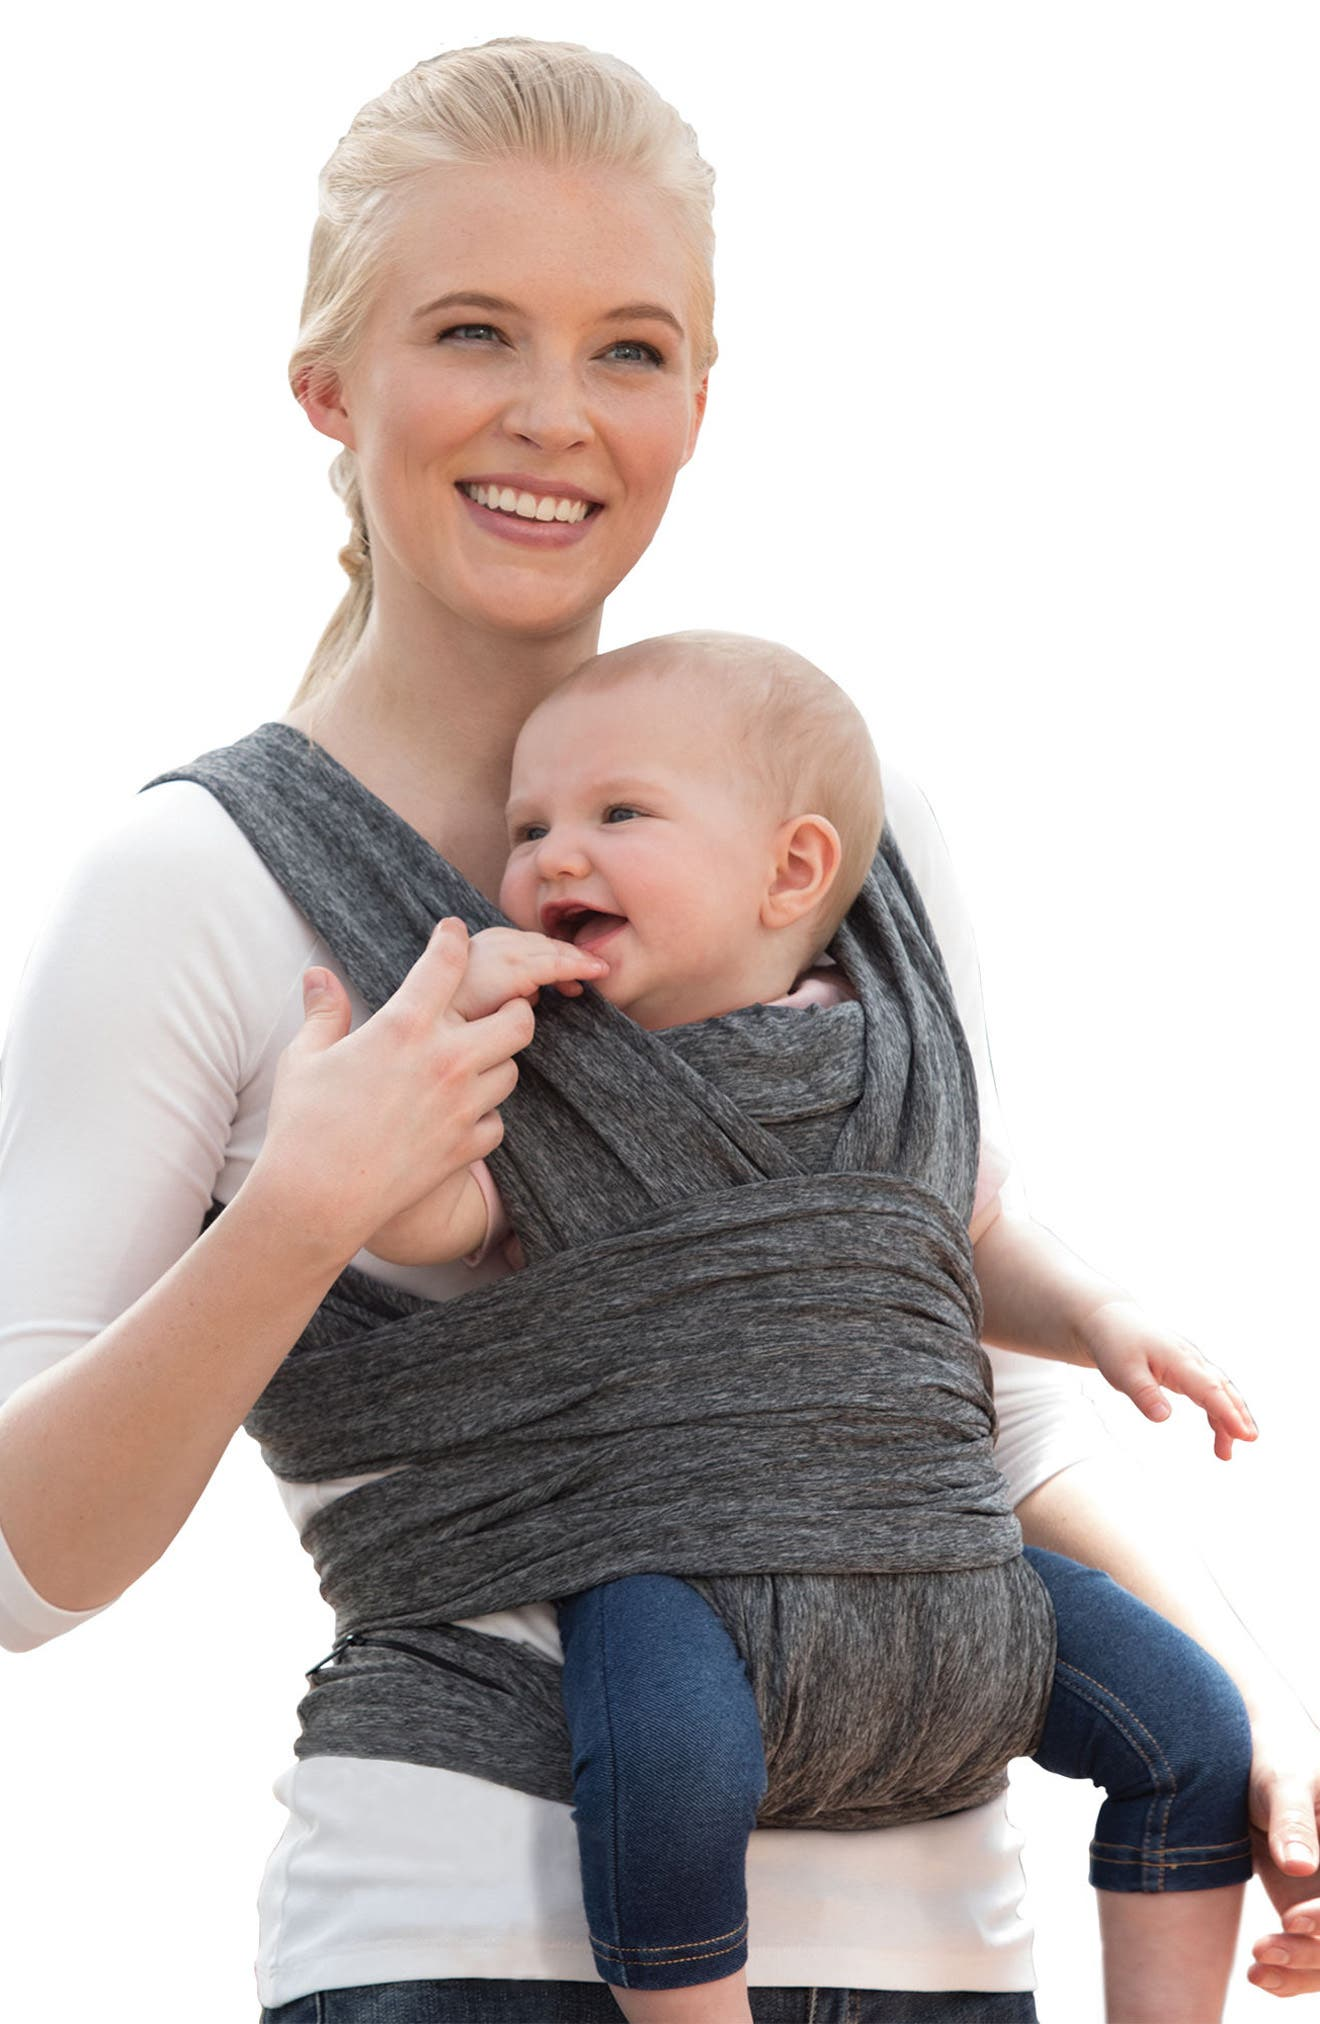 Main Image - Boppy ComfyFit Baby Carrier